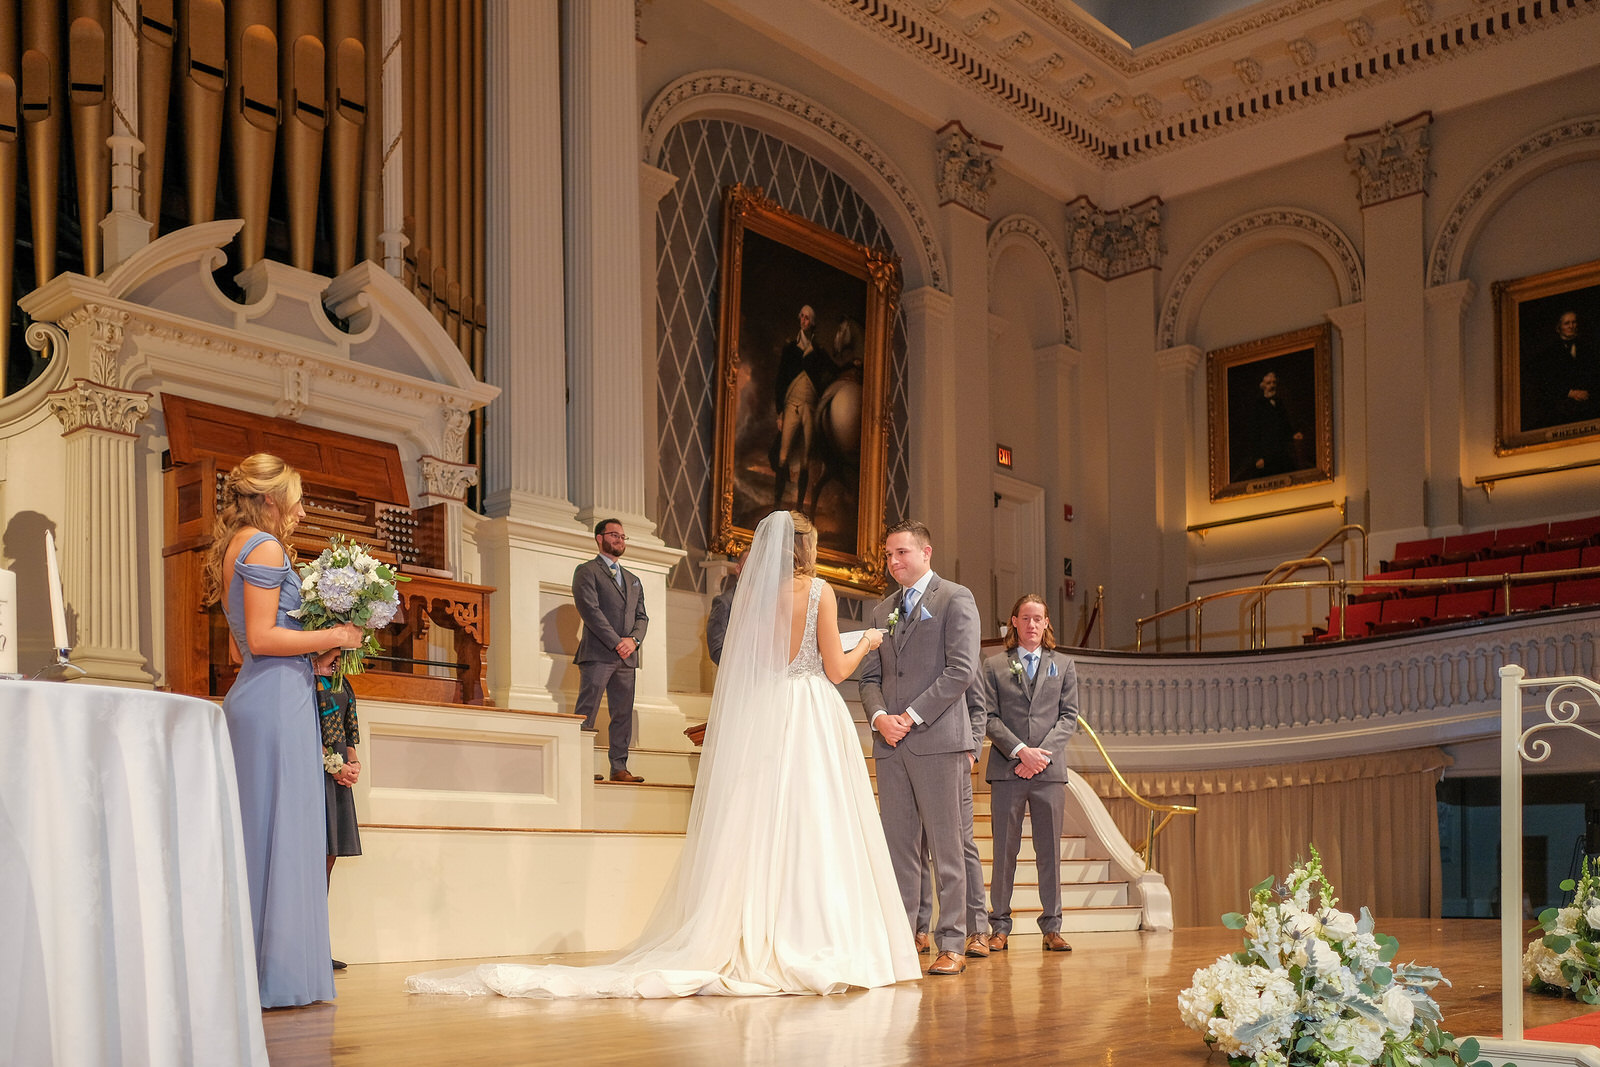 mechanics-hall-wedding-photography-worcester-ma-600.jpg